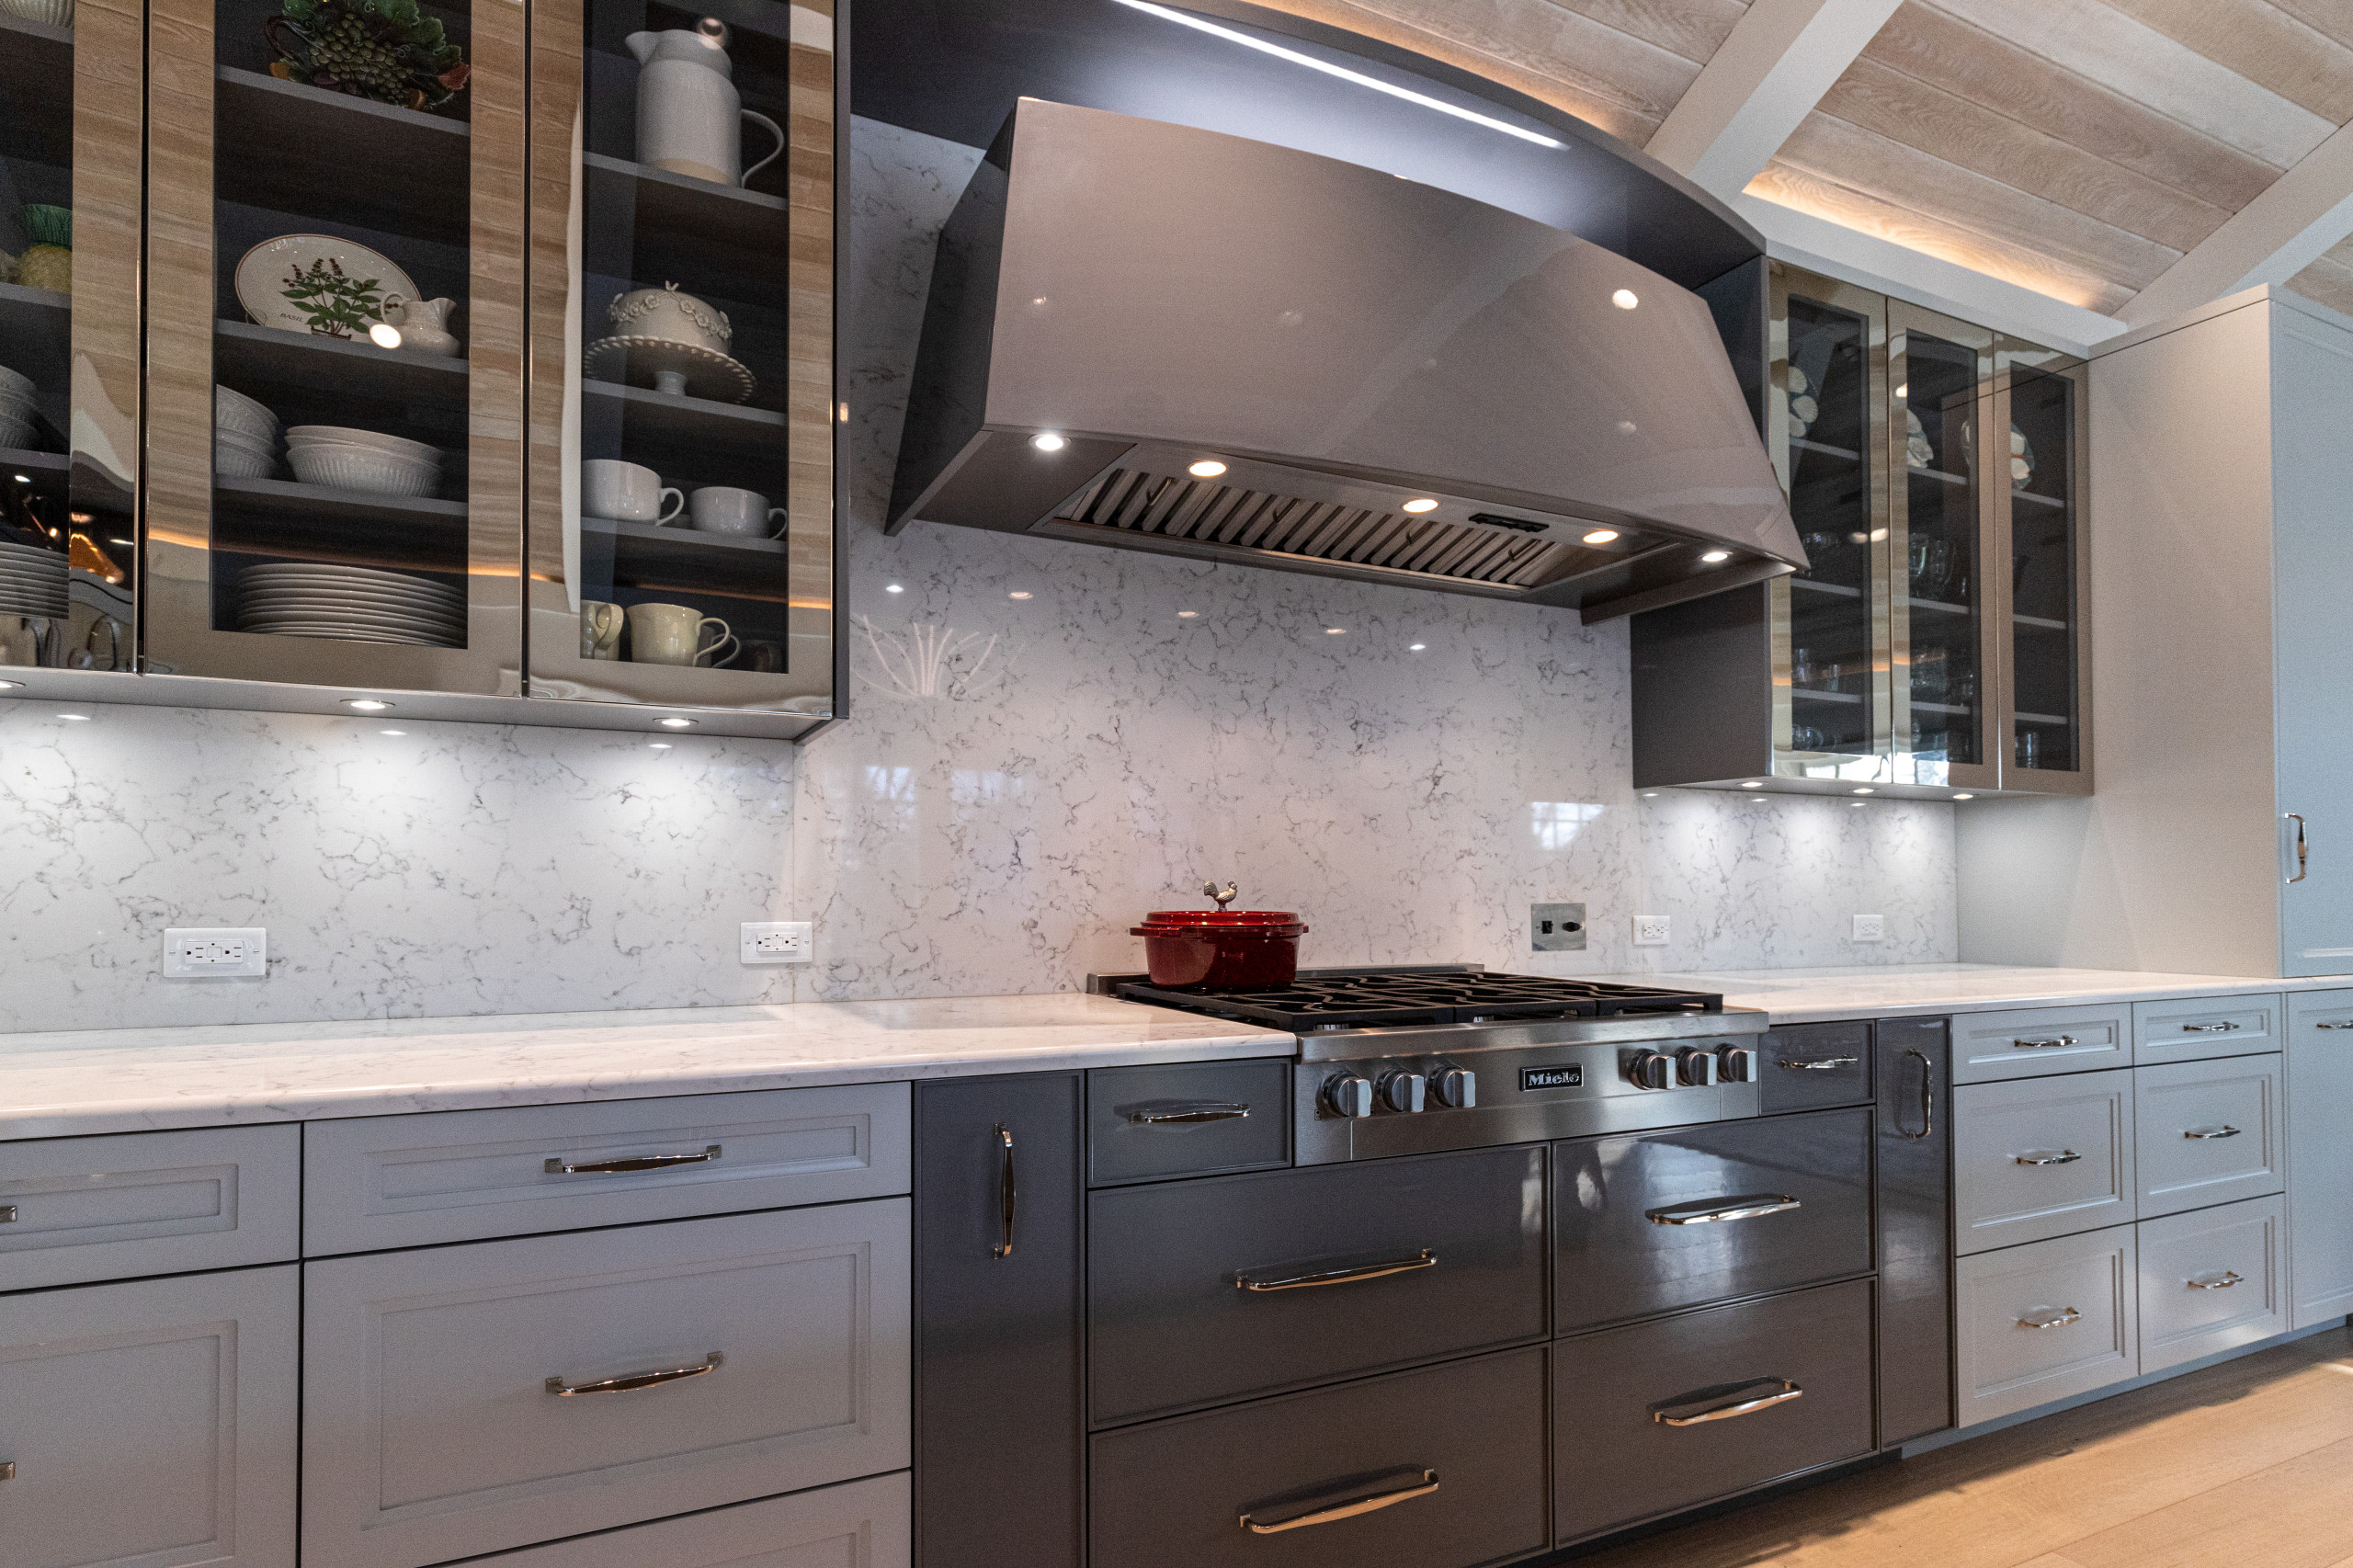 cook zone - everything at your fingertips - check that curved and sloped hood!